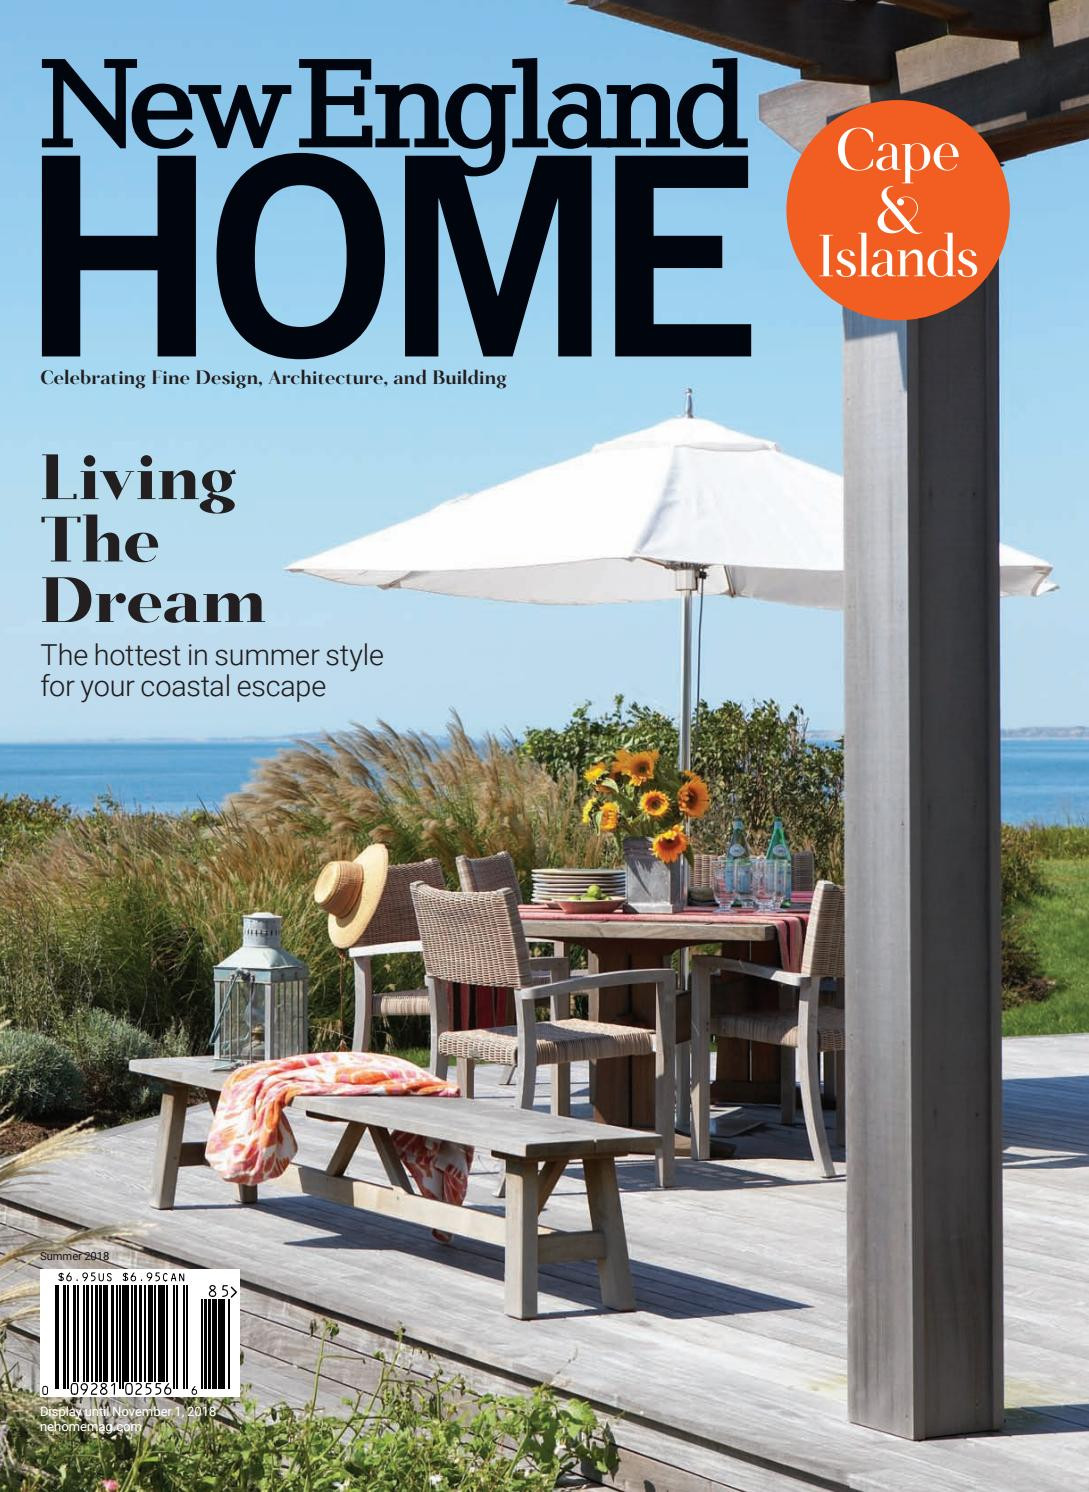 sand ceremony nesting vases of new england home cape and islands 2018 by new england home magazine for new england home cape and islands 2018 by new england home magazine llc issuu